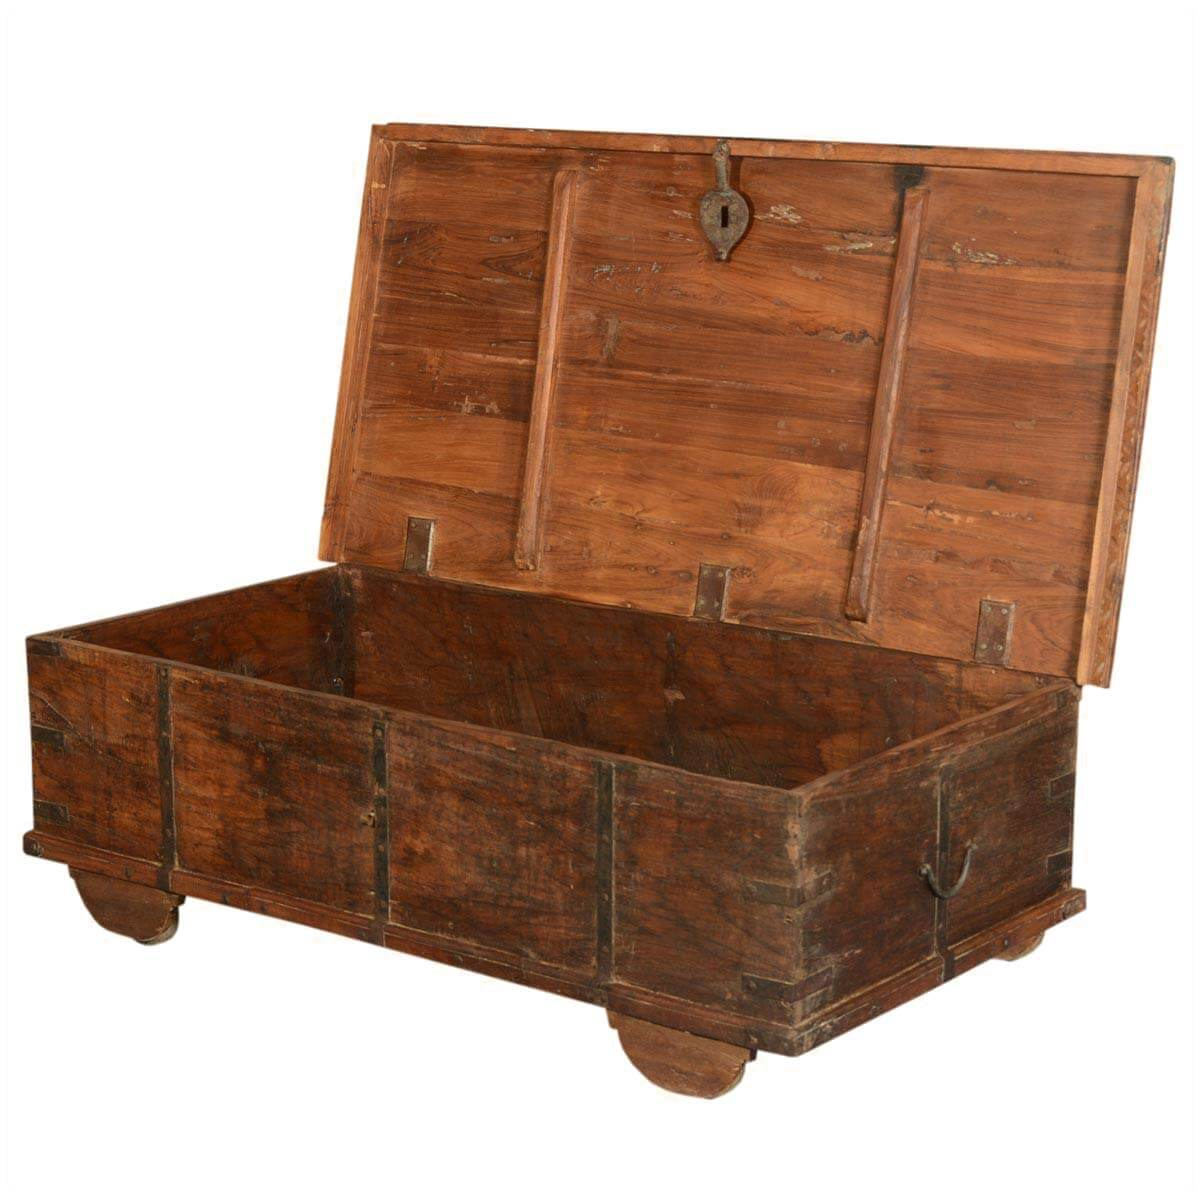 Langley Reclaimed Wood Rustic Metal Accent Storage Trunk Coffee Table